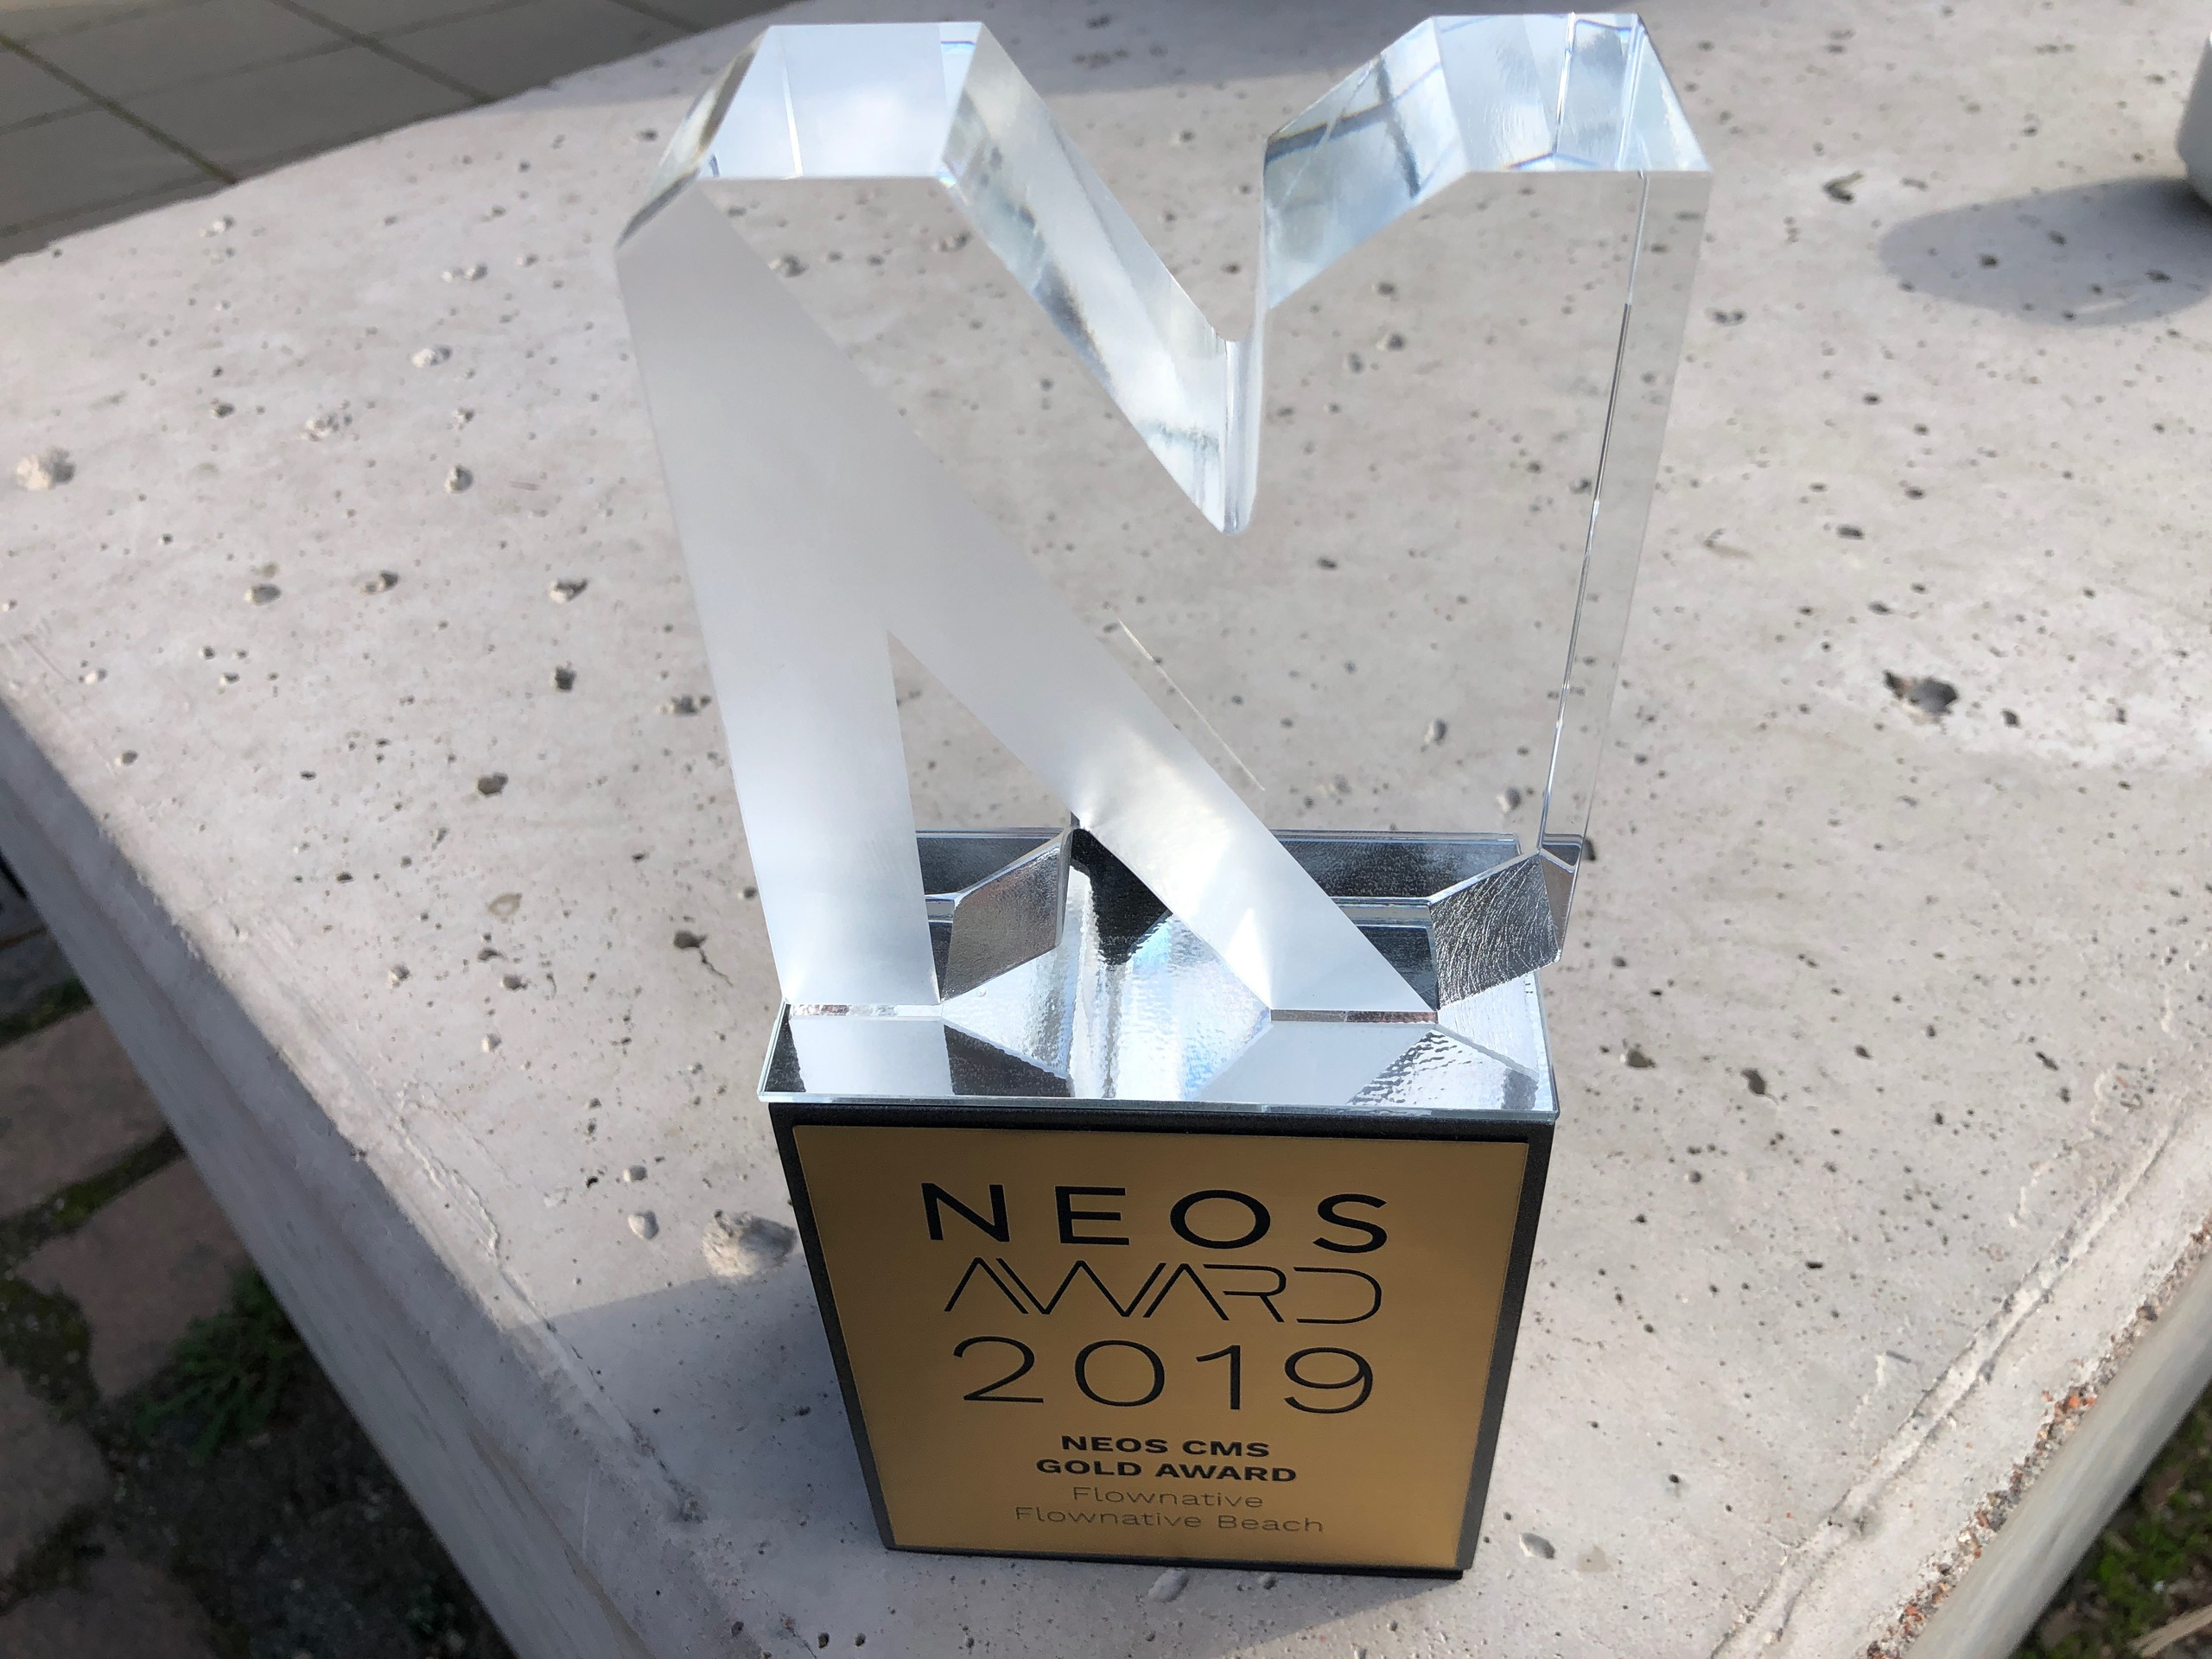 The Neos CMS Gold Award trophy